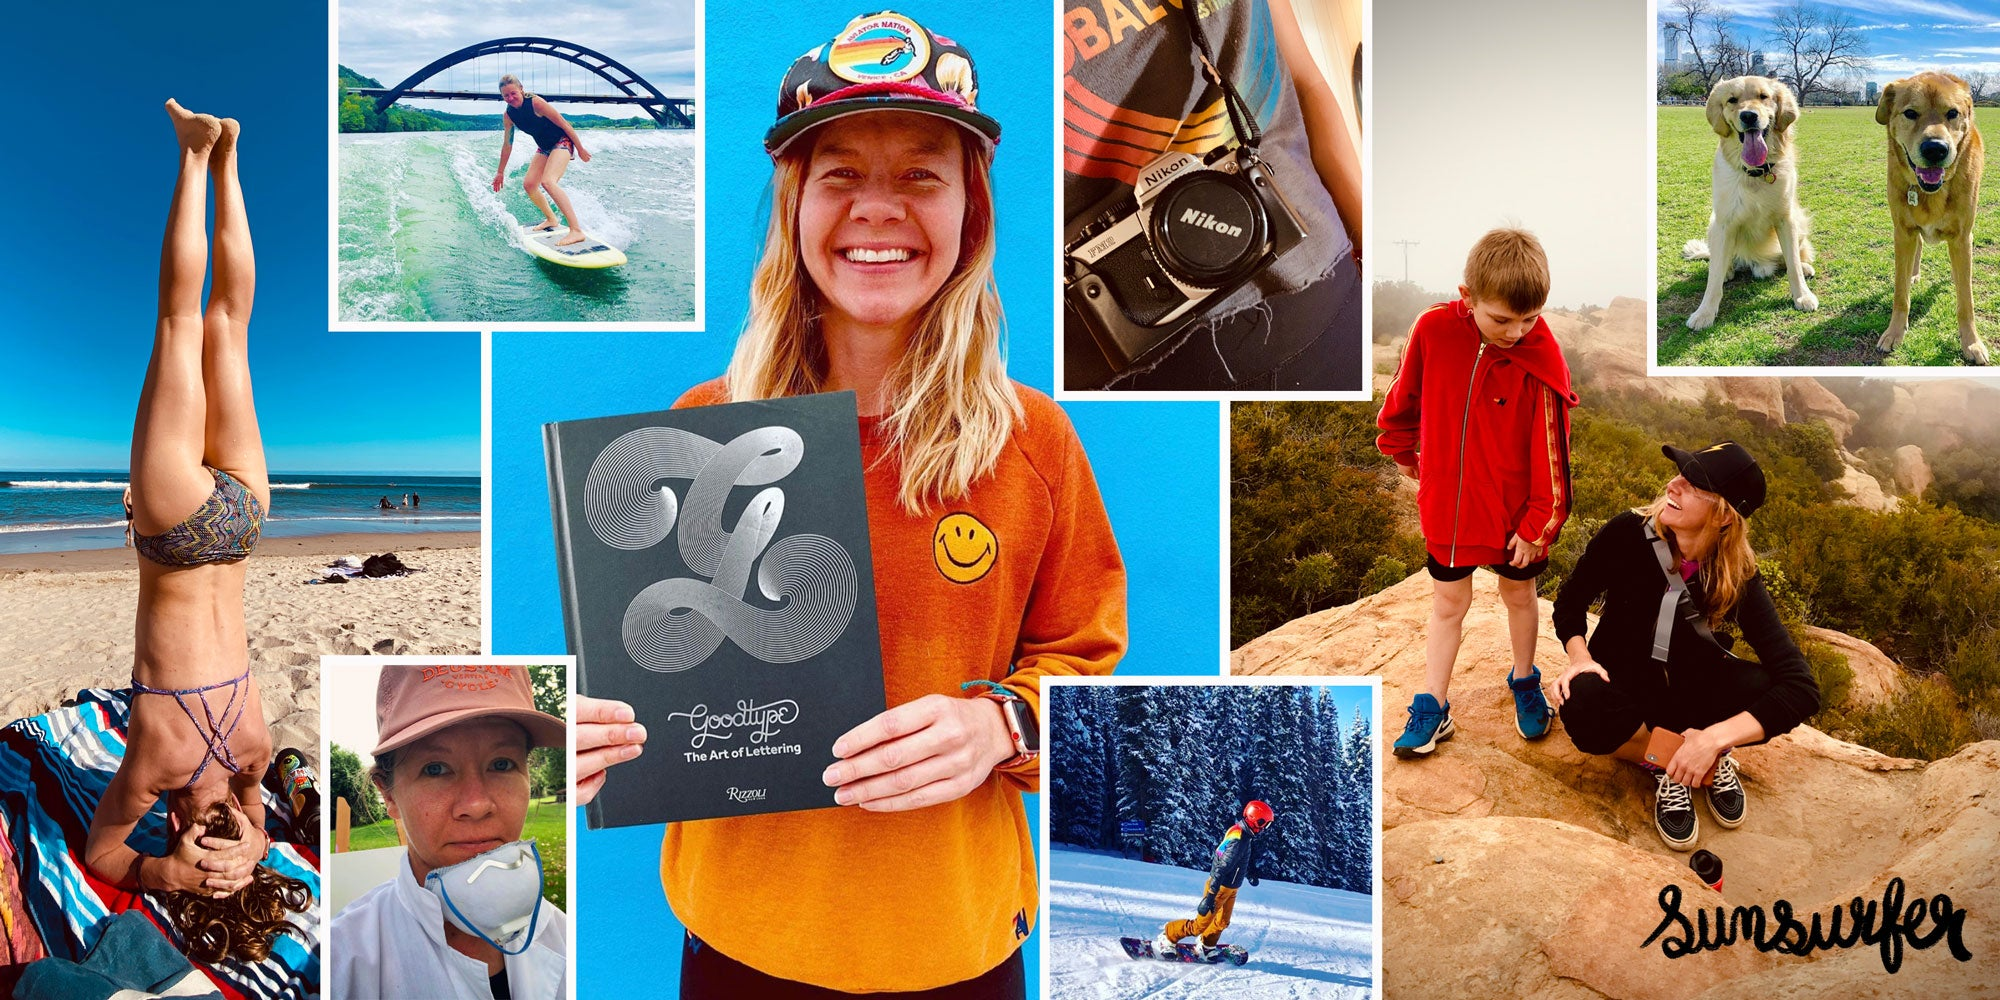 BROOKE THE SUNSURFER COLLAGE